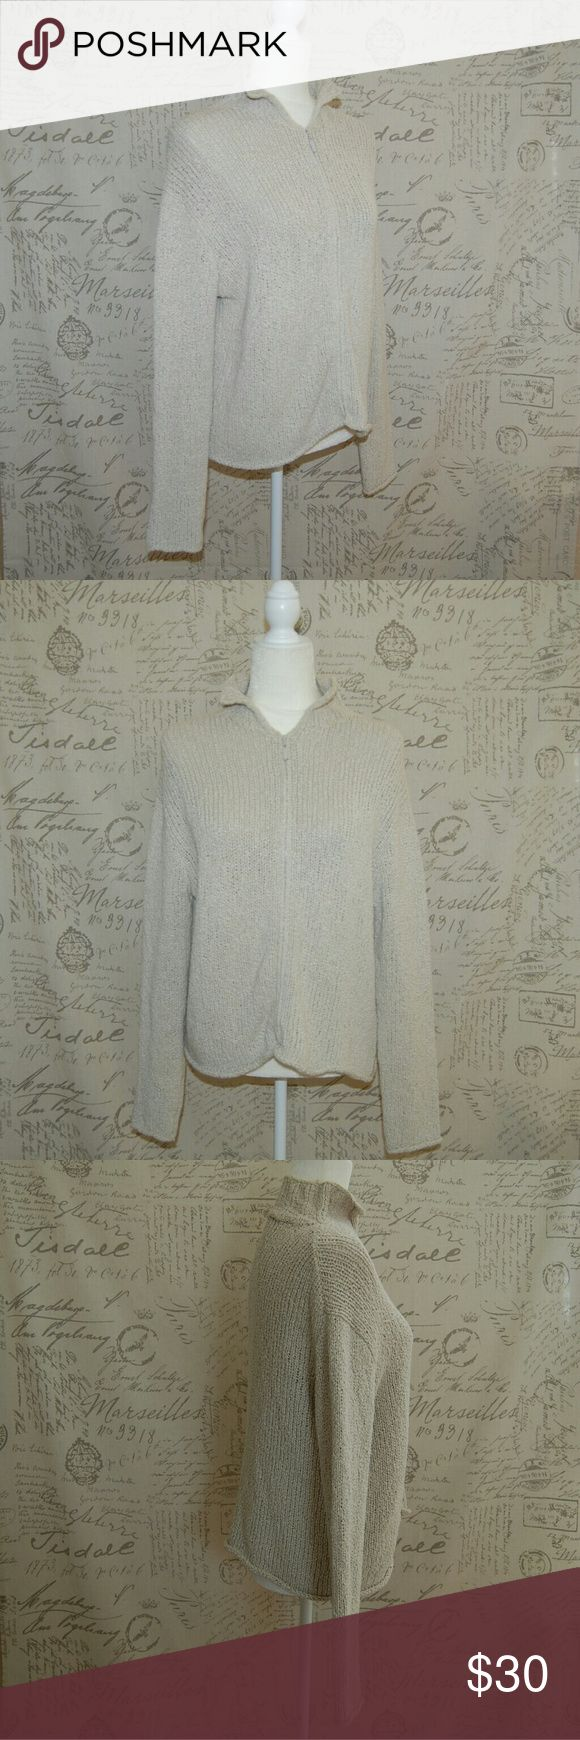 "Eileen Fisher Beige Zip Up Sweater Cardigan Small Beige knit Zip up cardigan sweater Small Gently worn Pit to pit 20.5"" Sleeves 22.5"" Length 21"" Eileen Fisher Sweaters Cardigans"